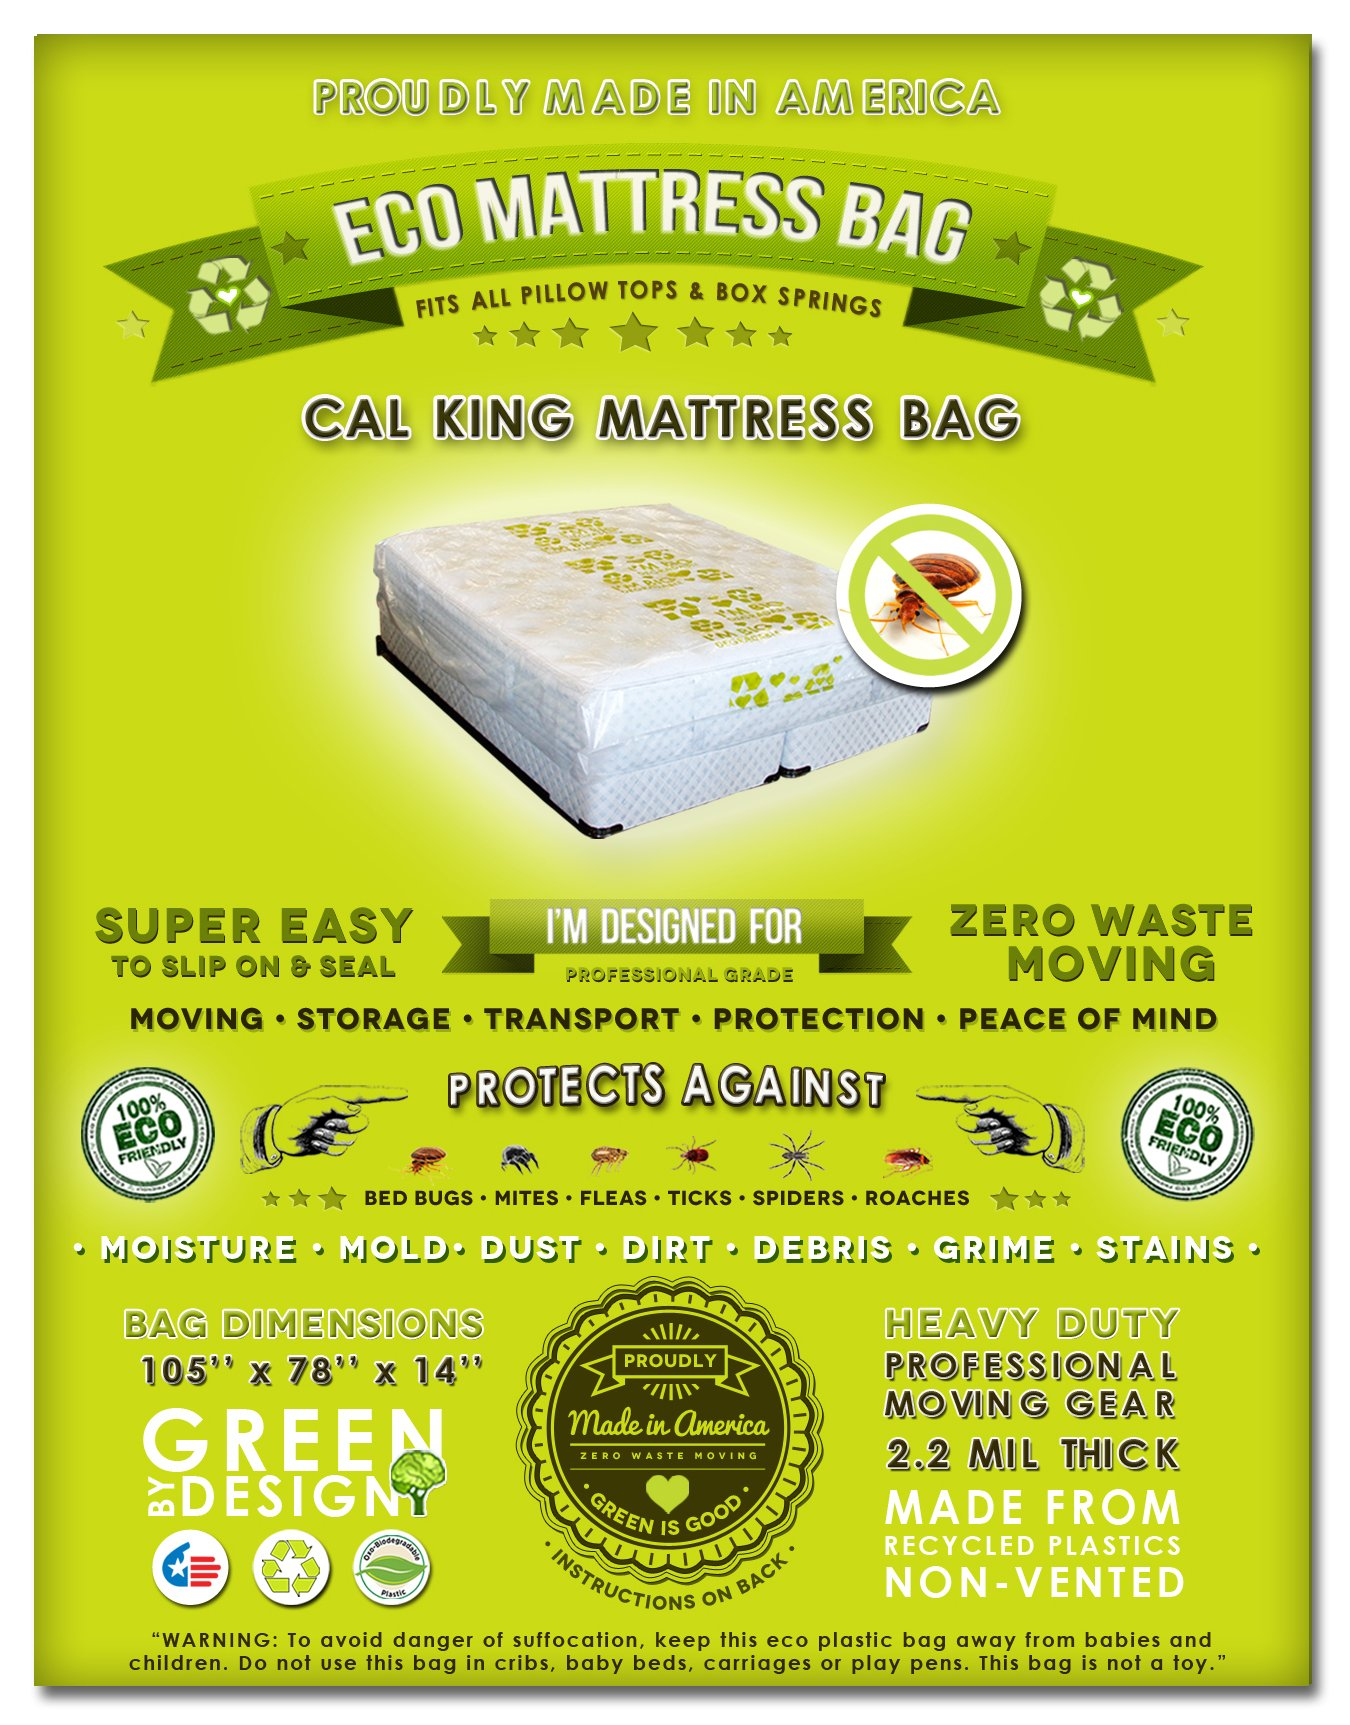 2 Cal King or King Mattress Protection Bags. Fits All Pillow Tops and Box Springs. Professional Grade 2.2 Mil Super Thick, Non-vented and Non-toxic. Ideal for Moving, Storage and Protecting Your Mattress From Dust, Dirt, Grime, Stains and Accidents (Bed W